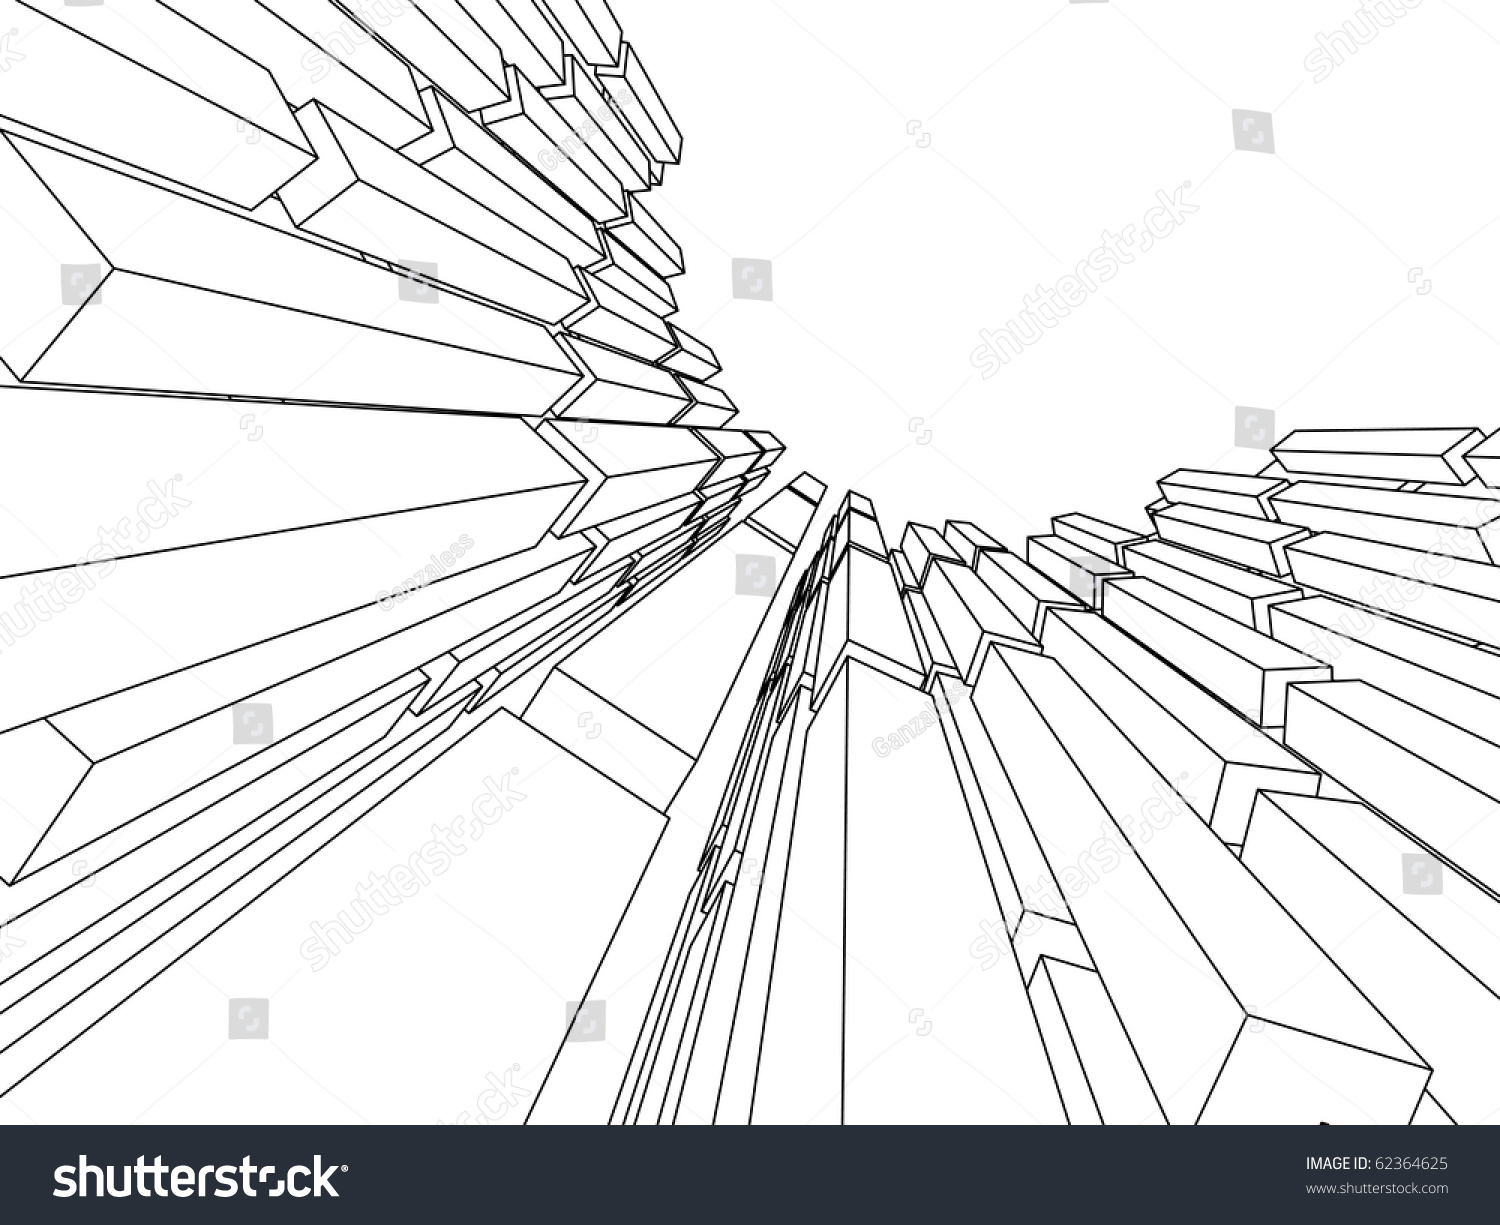 Line Art Architecture : Sketch of an abstract architecture stock vector